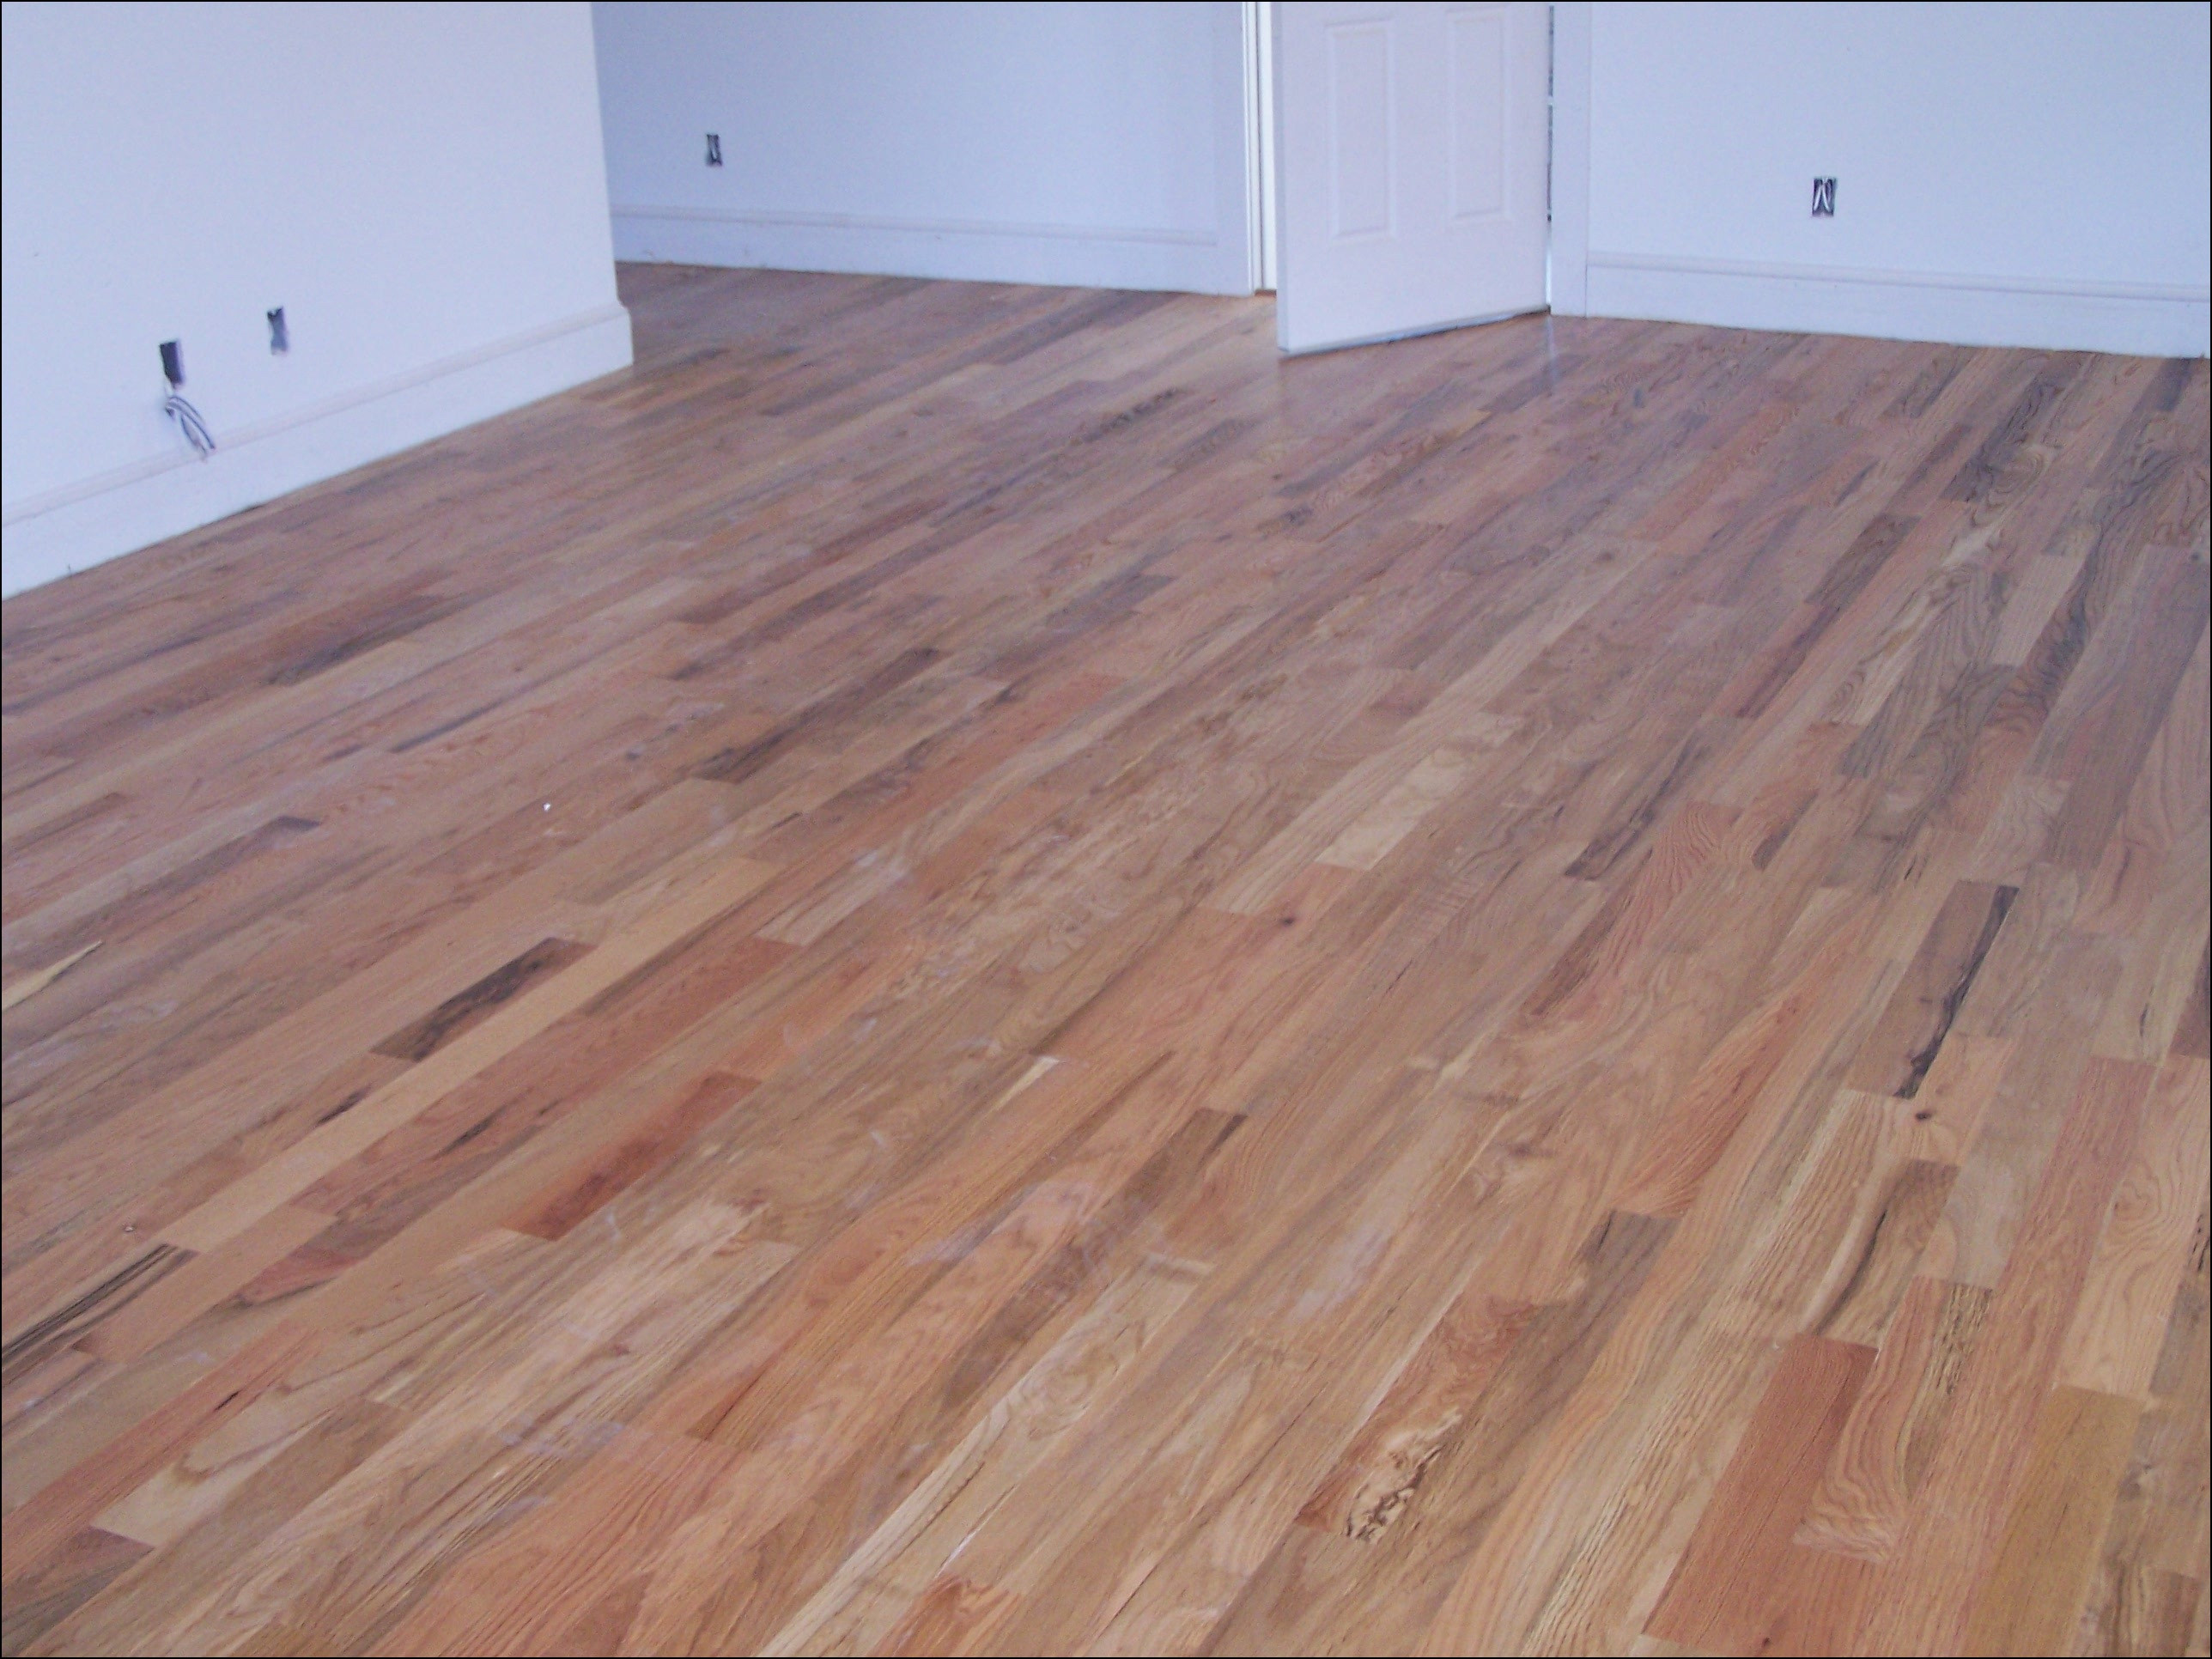 wide plank hardwood flooring lowes of wide plank flooring ideas in wide plank wood flooring lowes red oak wood flooring red oak wood floors of wide plank